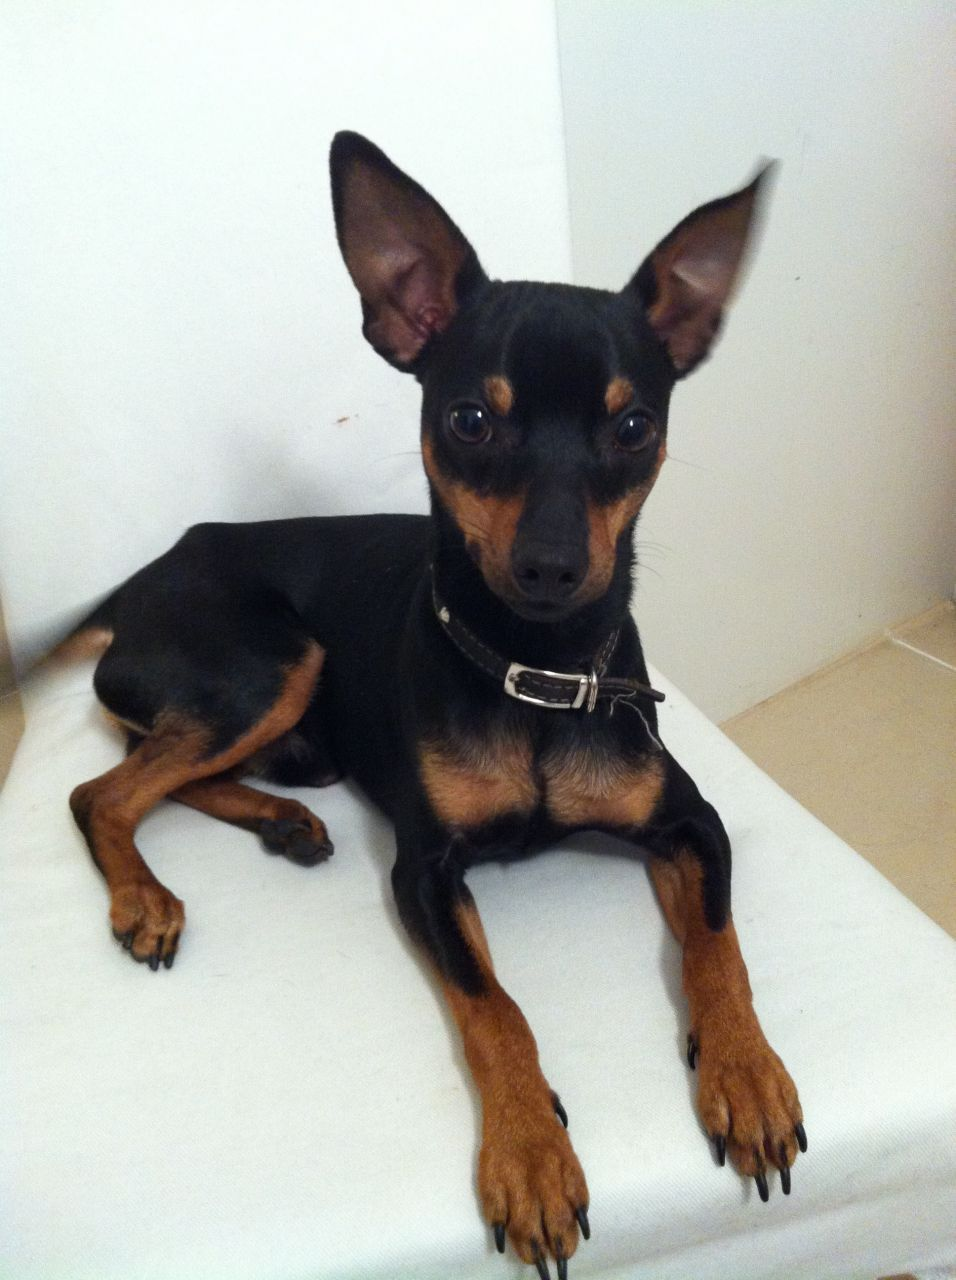 Miniature pinschers are an active breed and will need